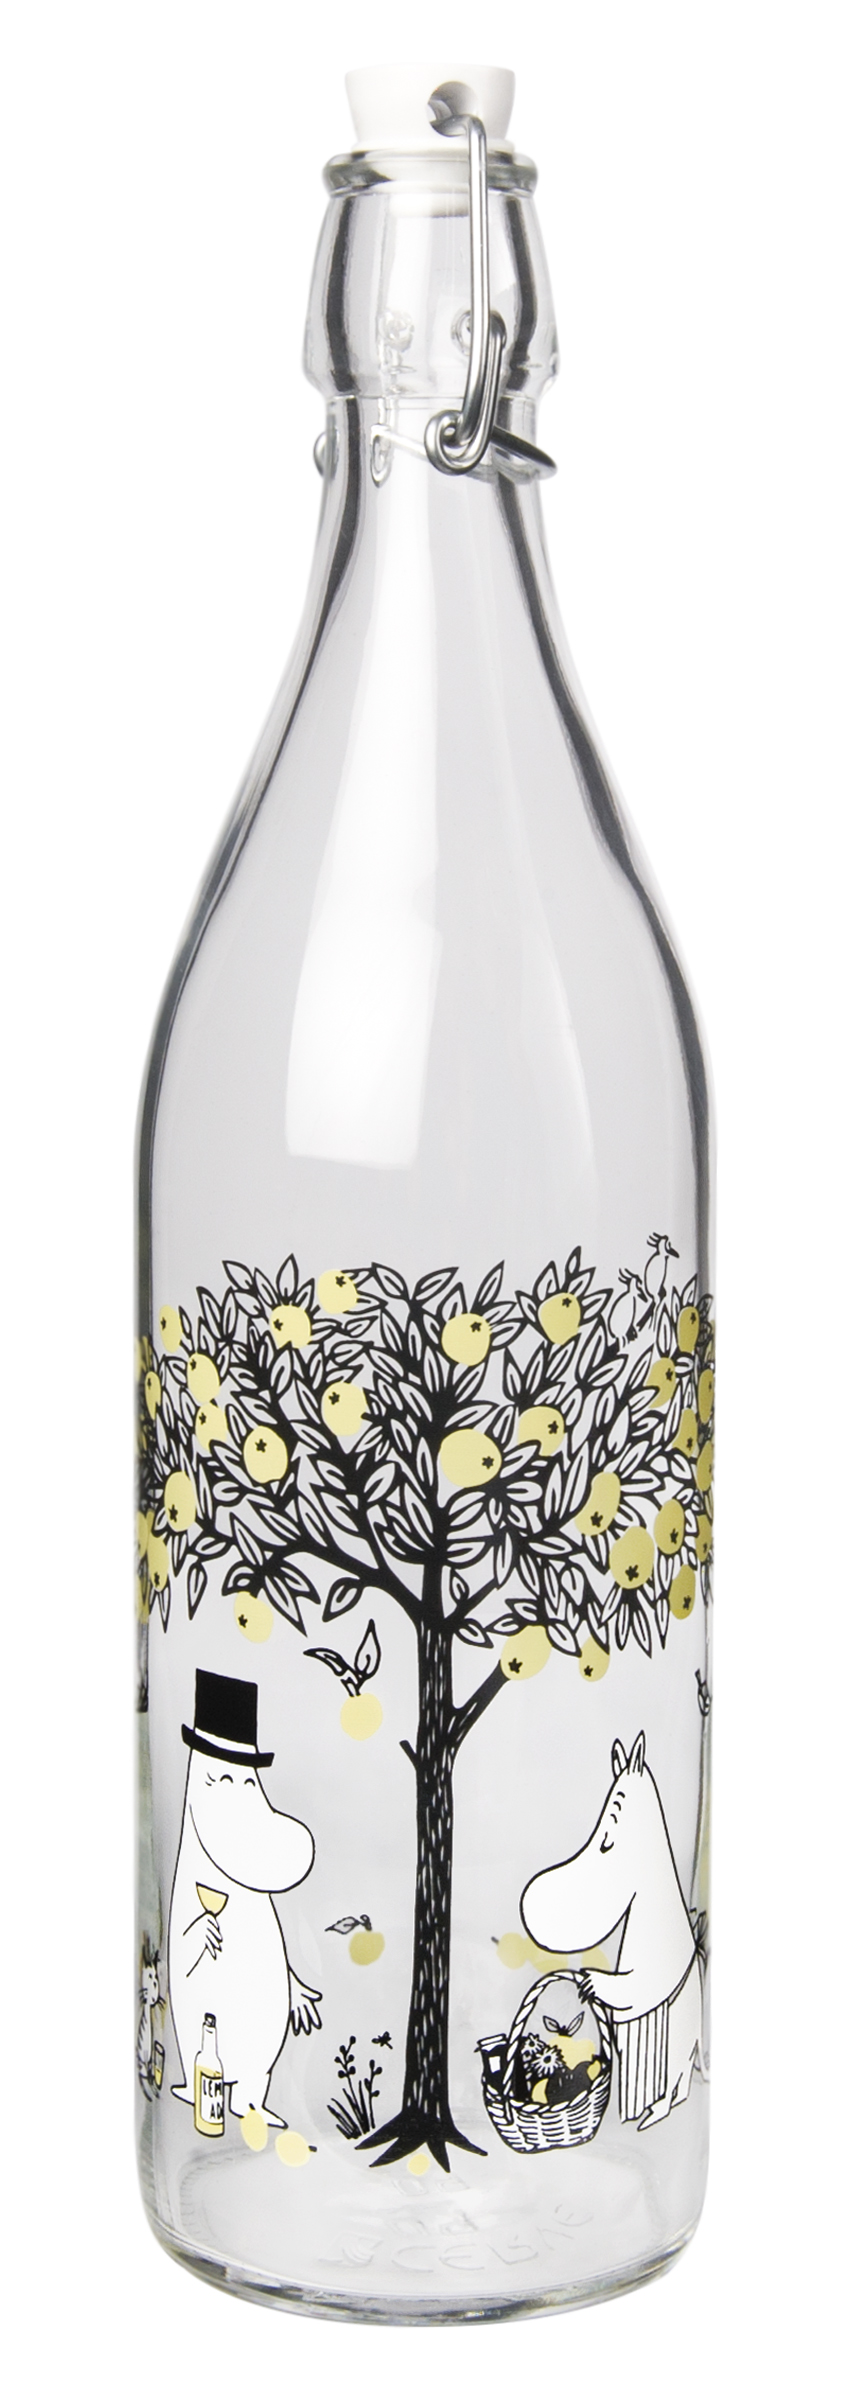 Muurla Moomin Apples glass bottle 1 L